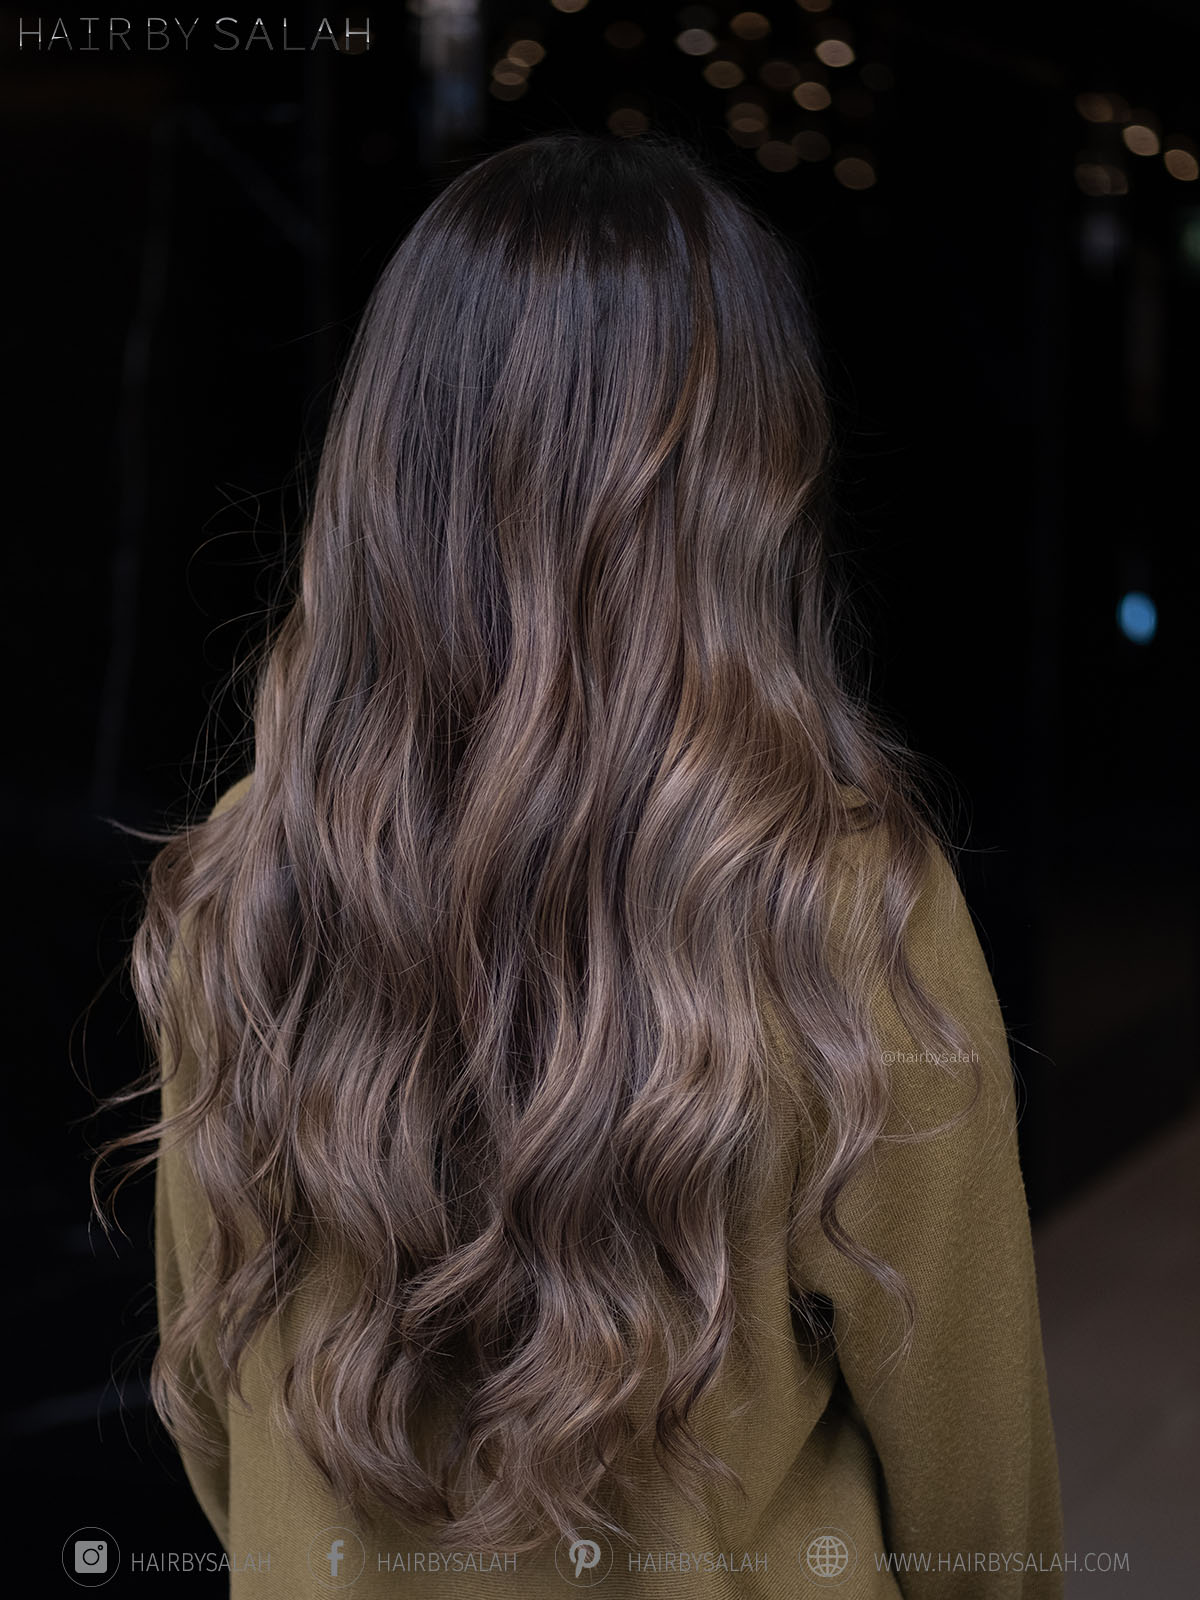 Shade Blend Hair Service from Hair By Salah and Hair Creators Colors Team